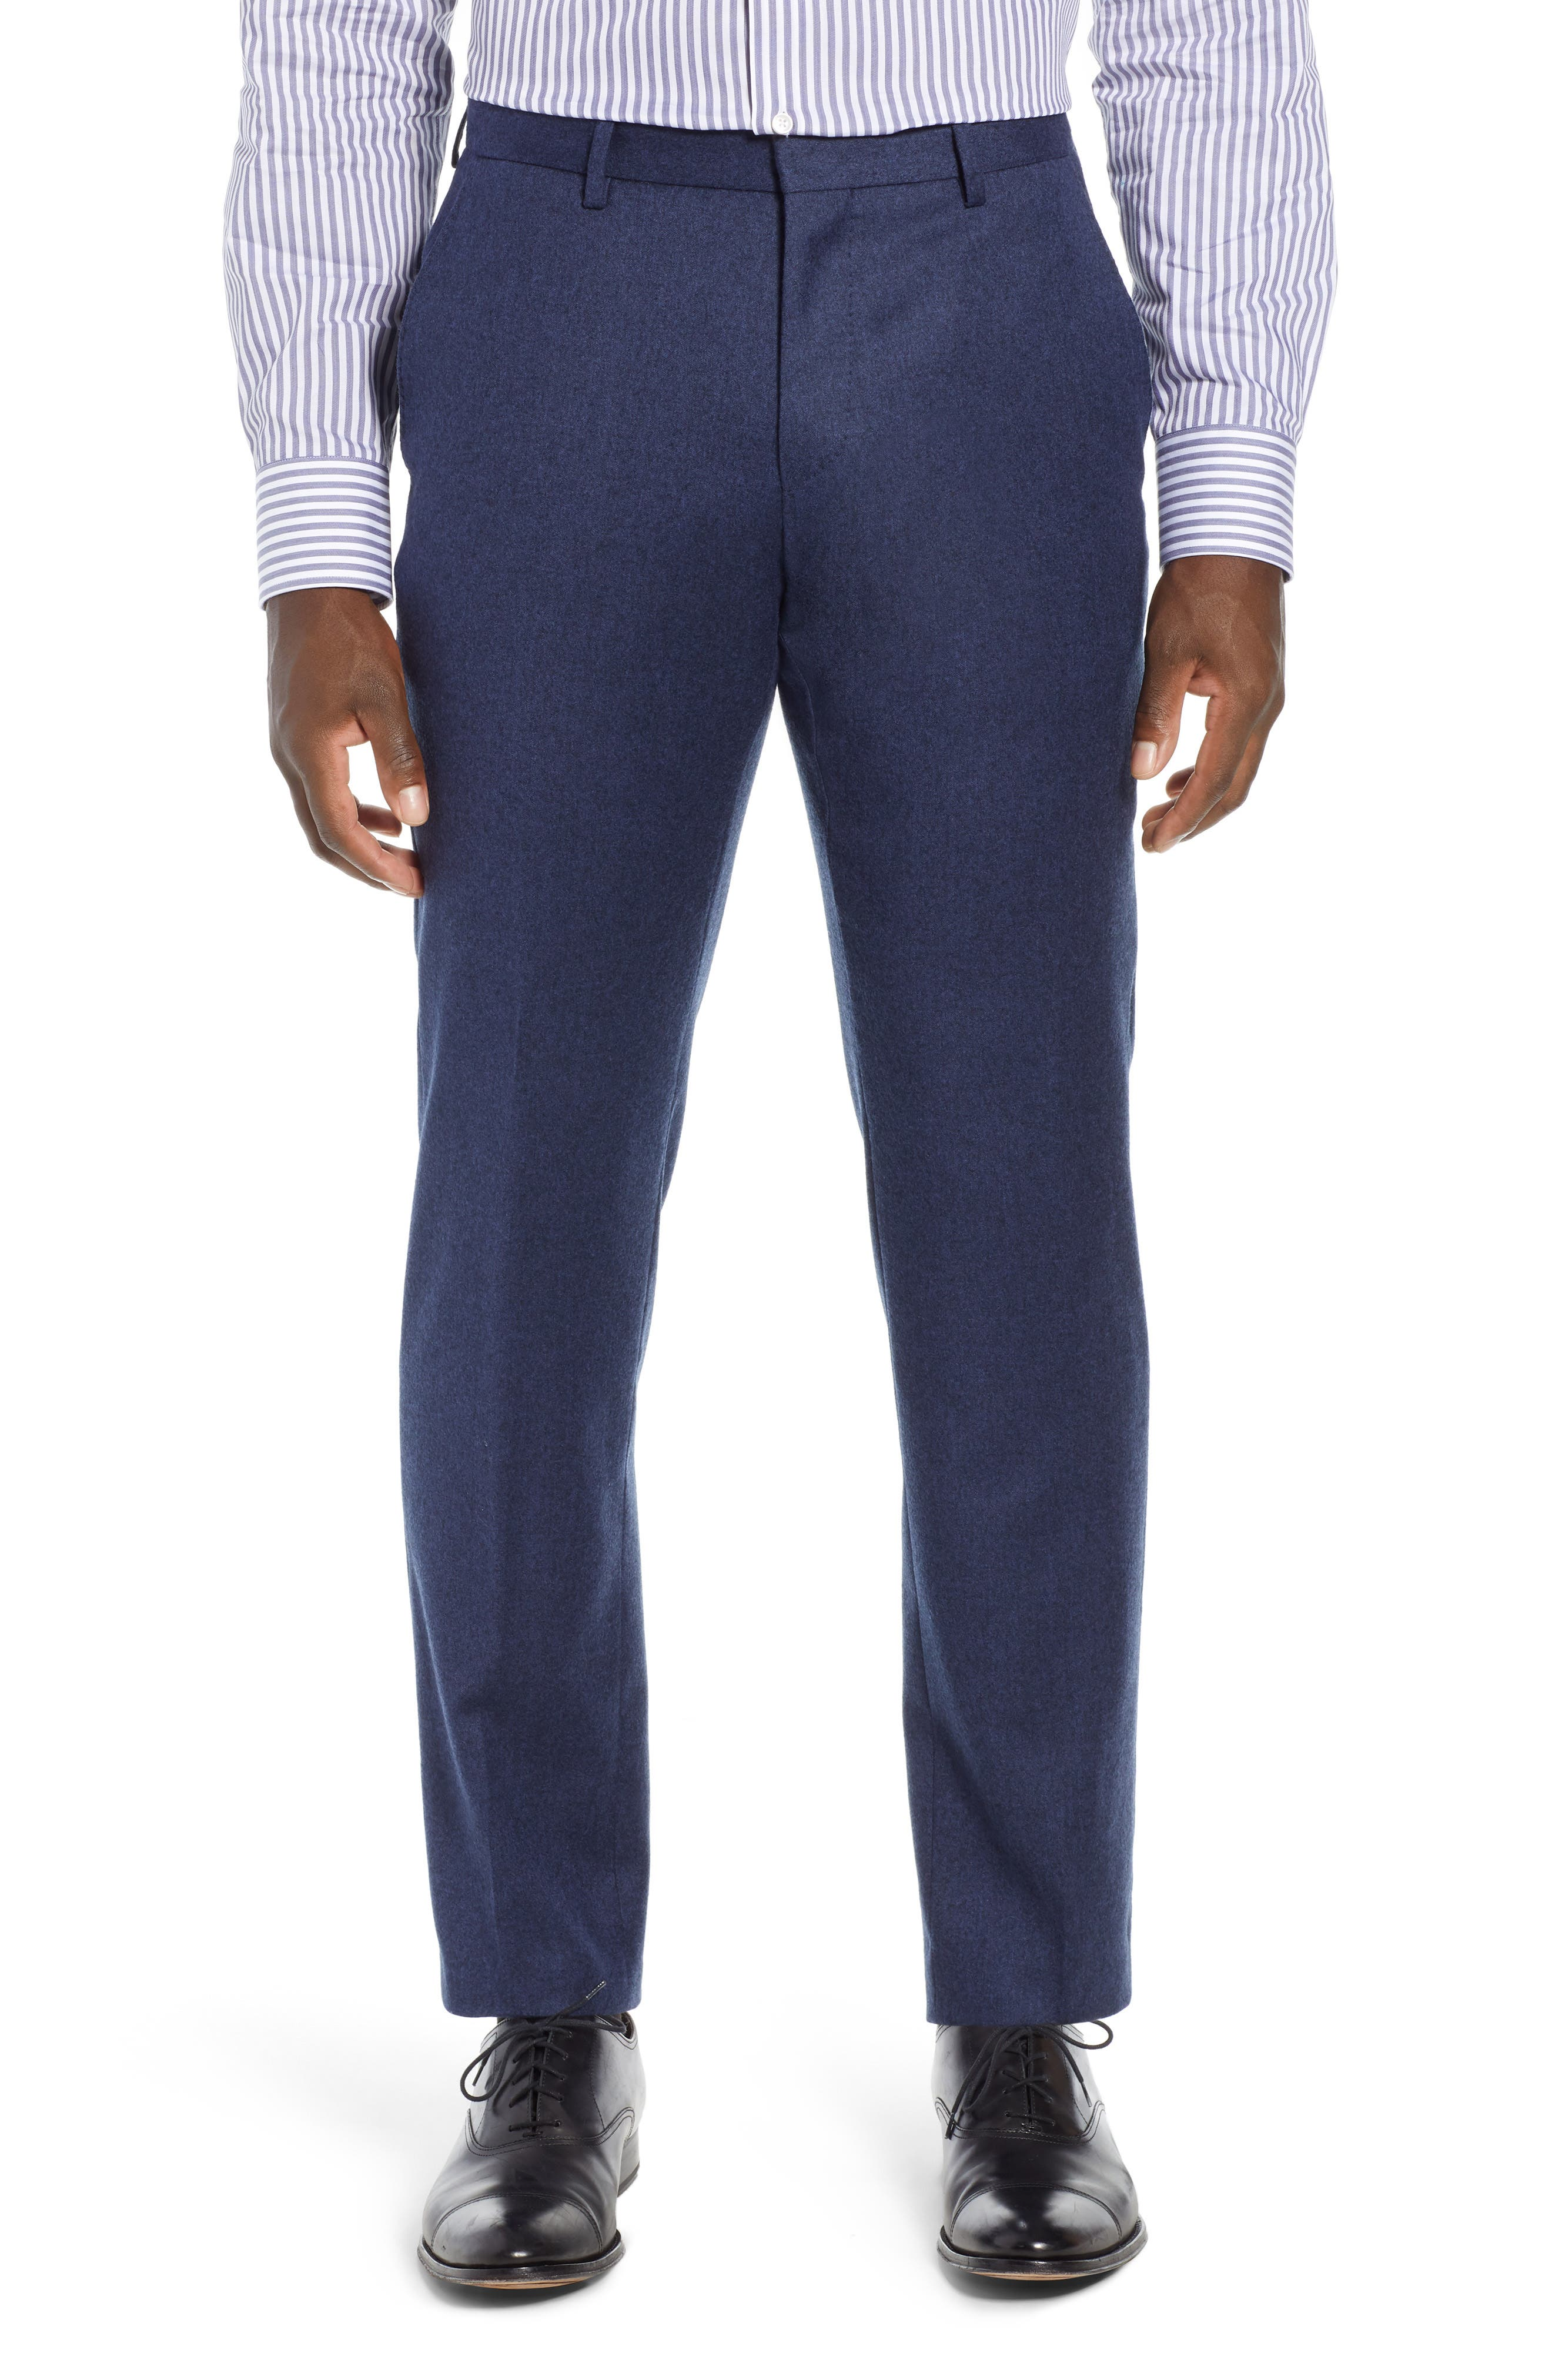 Gains Flat Front Solid Wool Trousers,                         Main,                         color, DARK BLUE